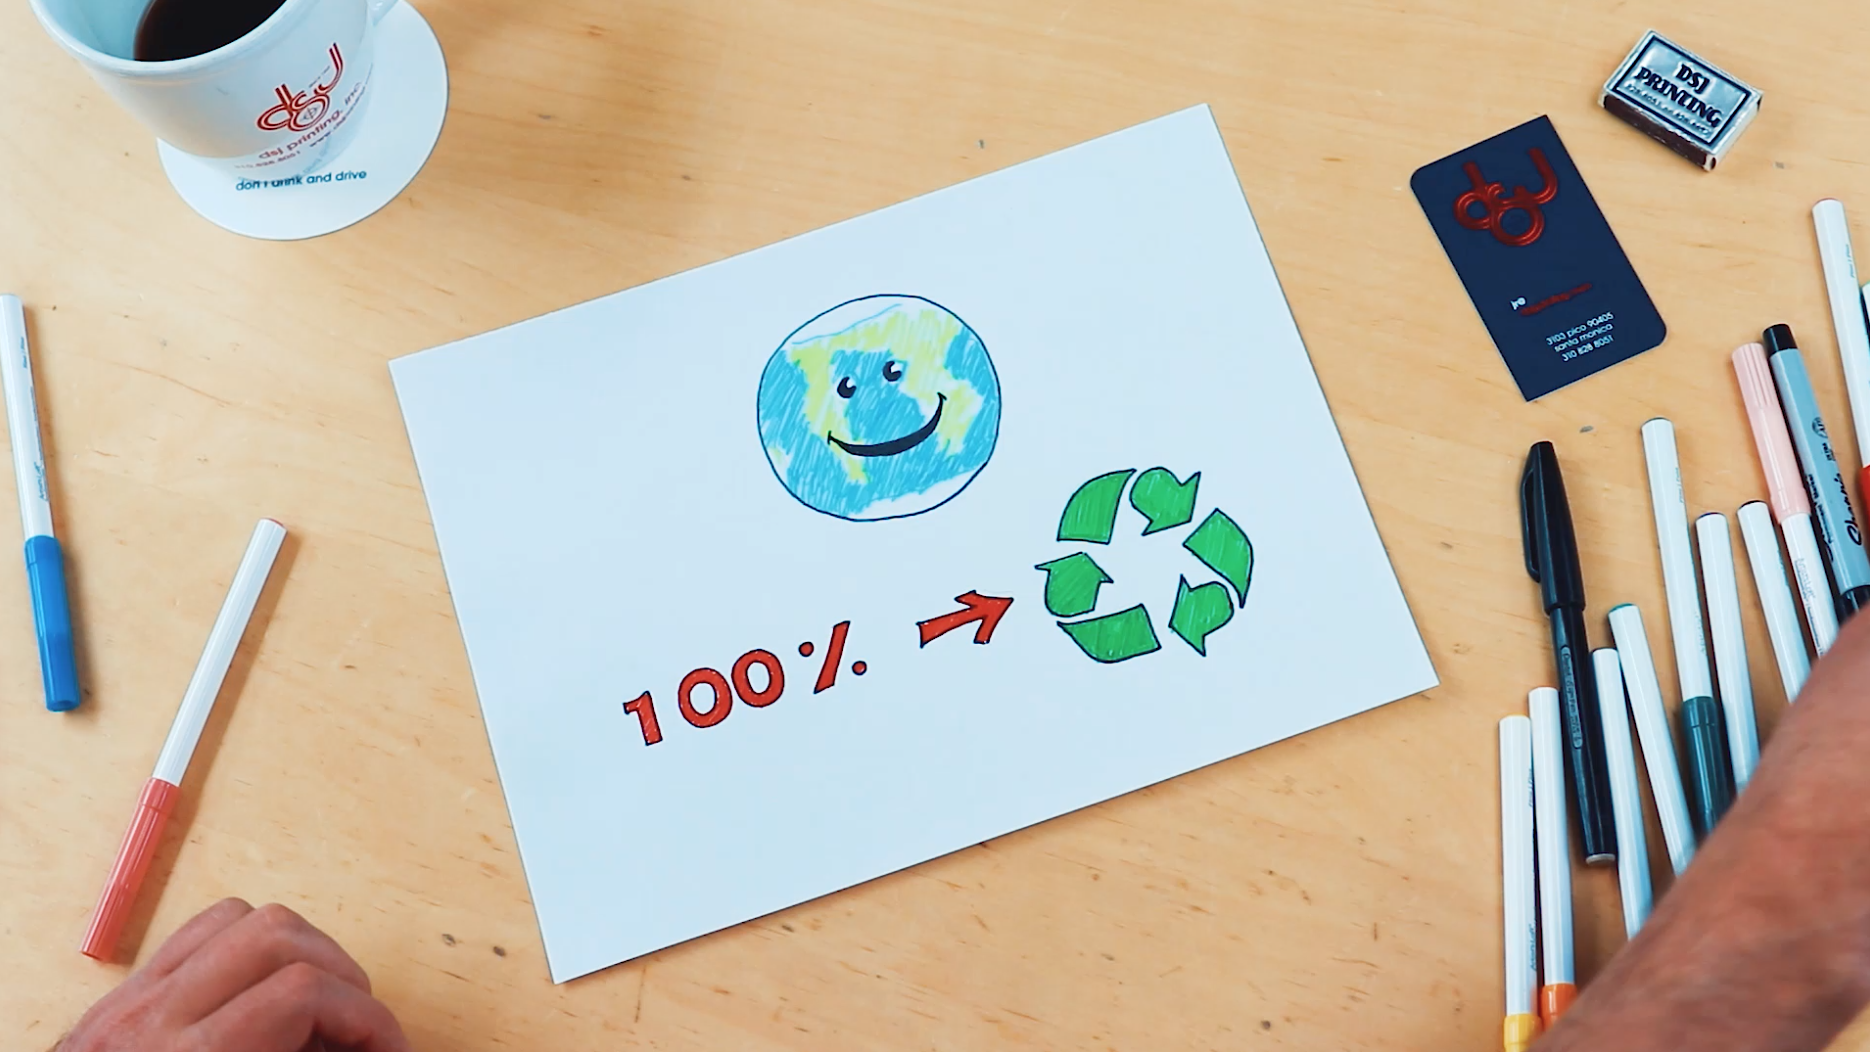 We make it easy to Reduce, Reuse & Recycle!